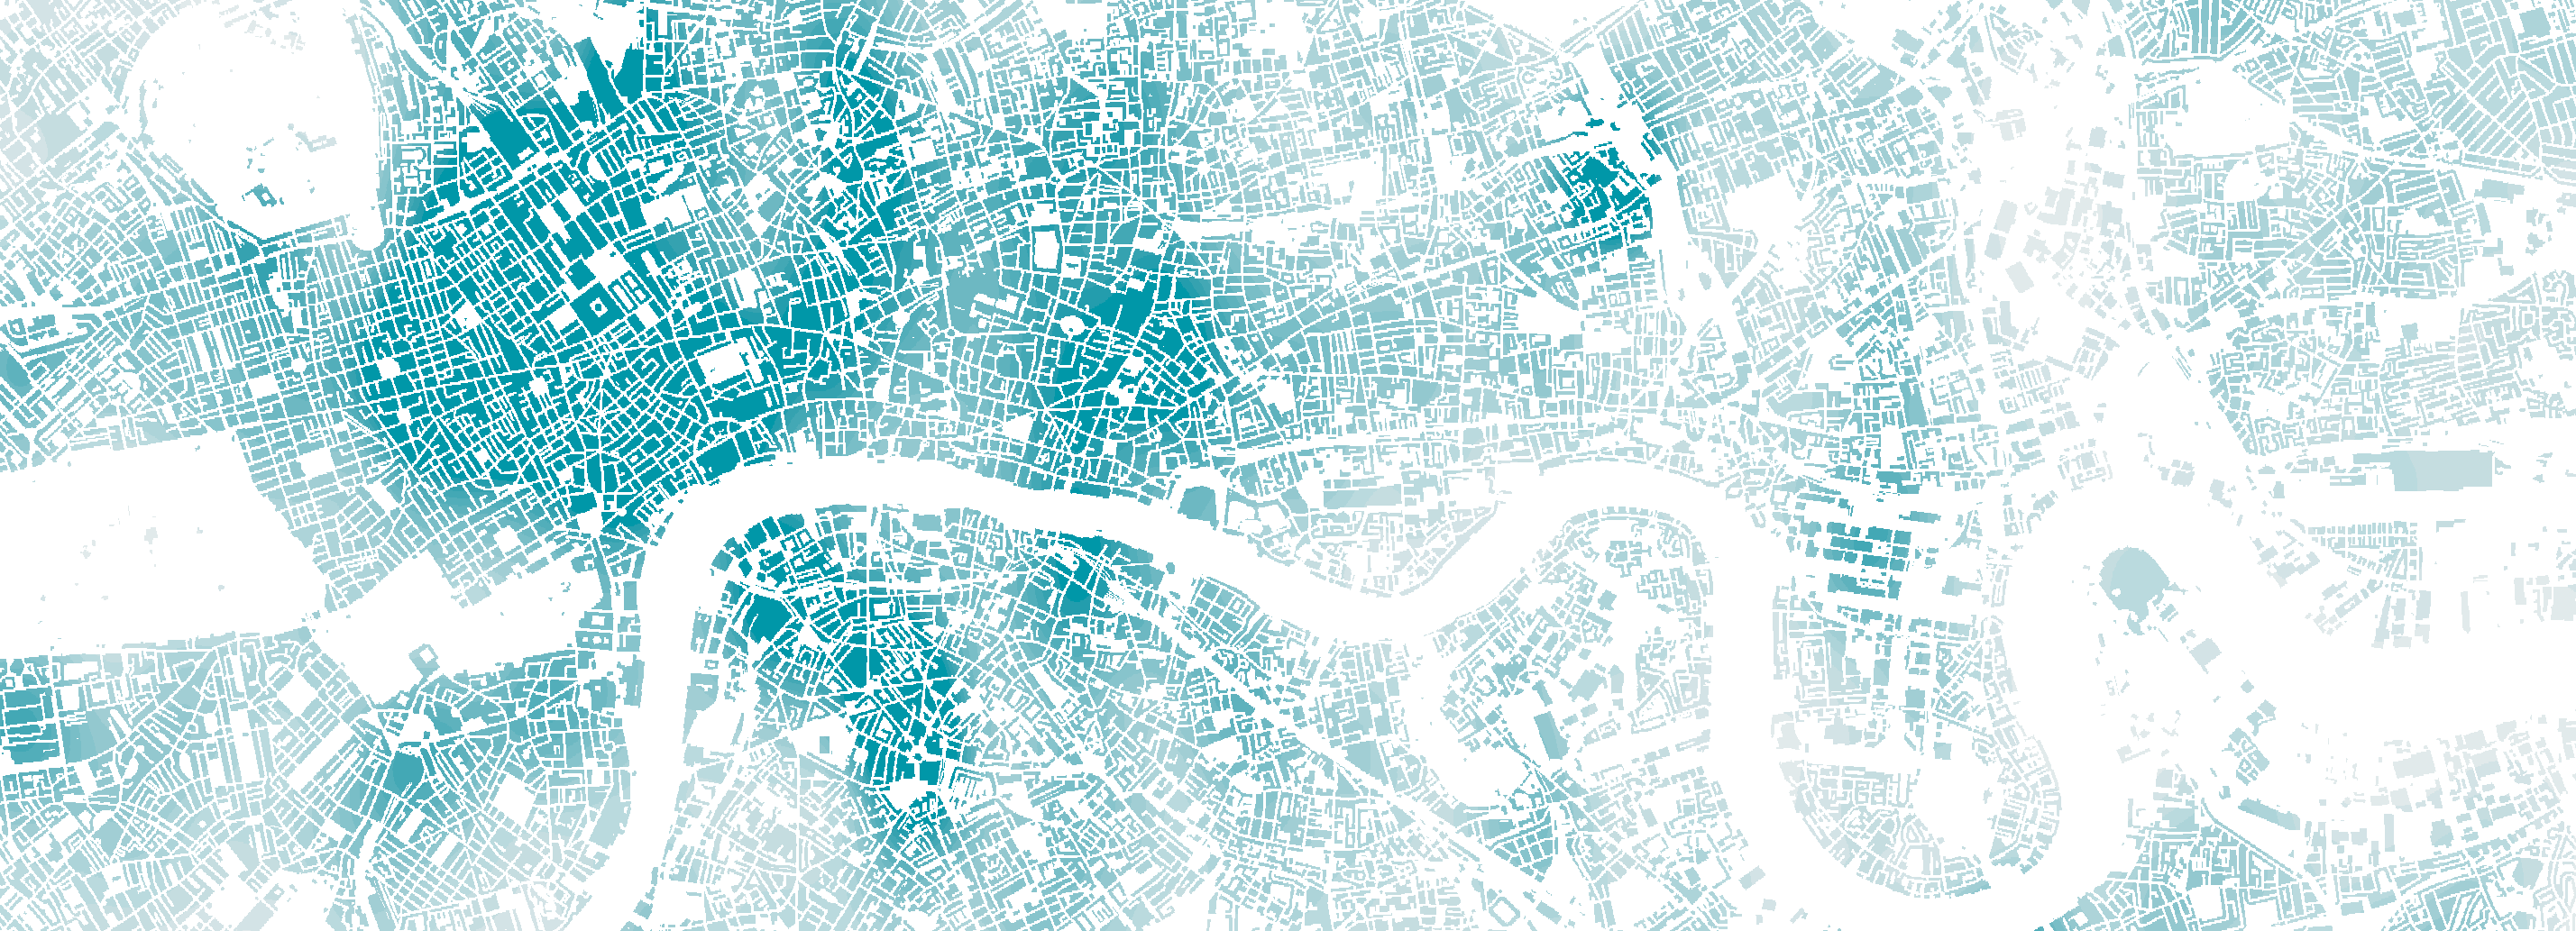 The density of Tweets about education in Central London (Lansley and Longley, 2016)